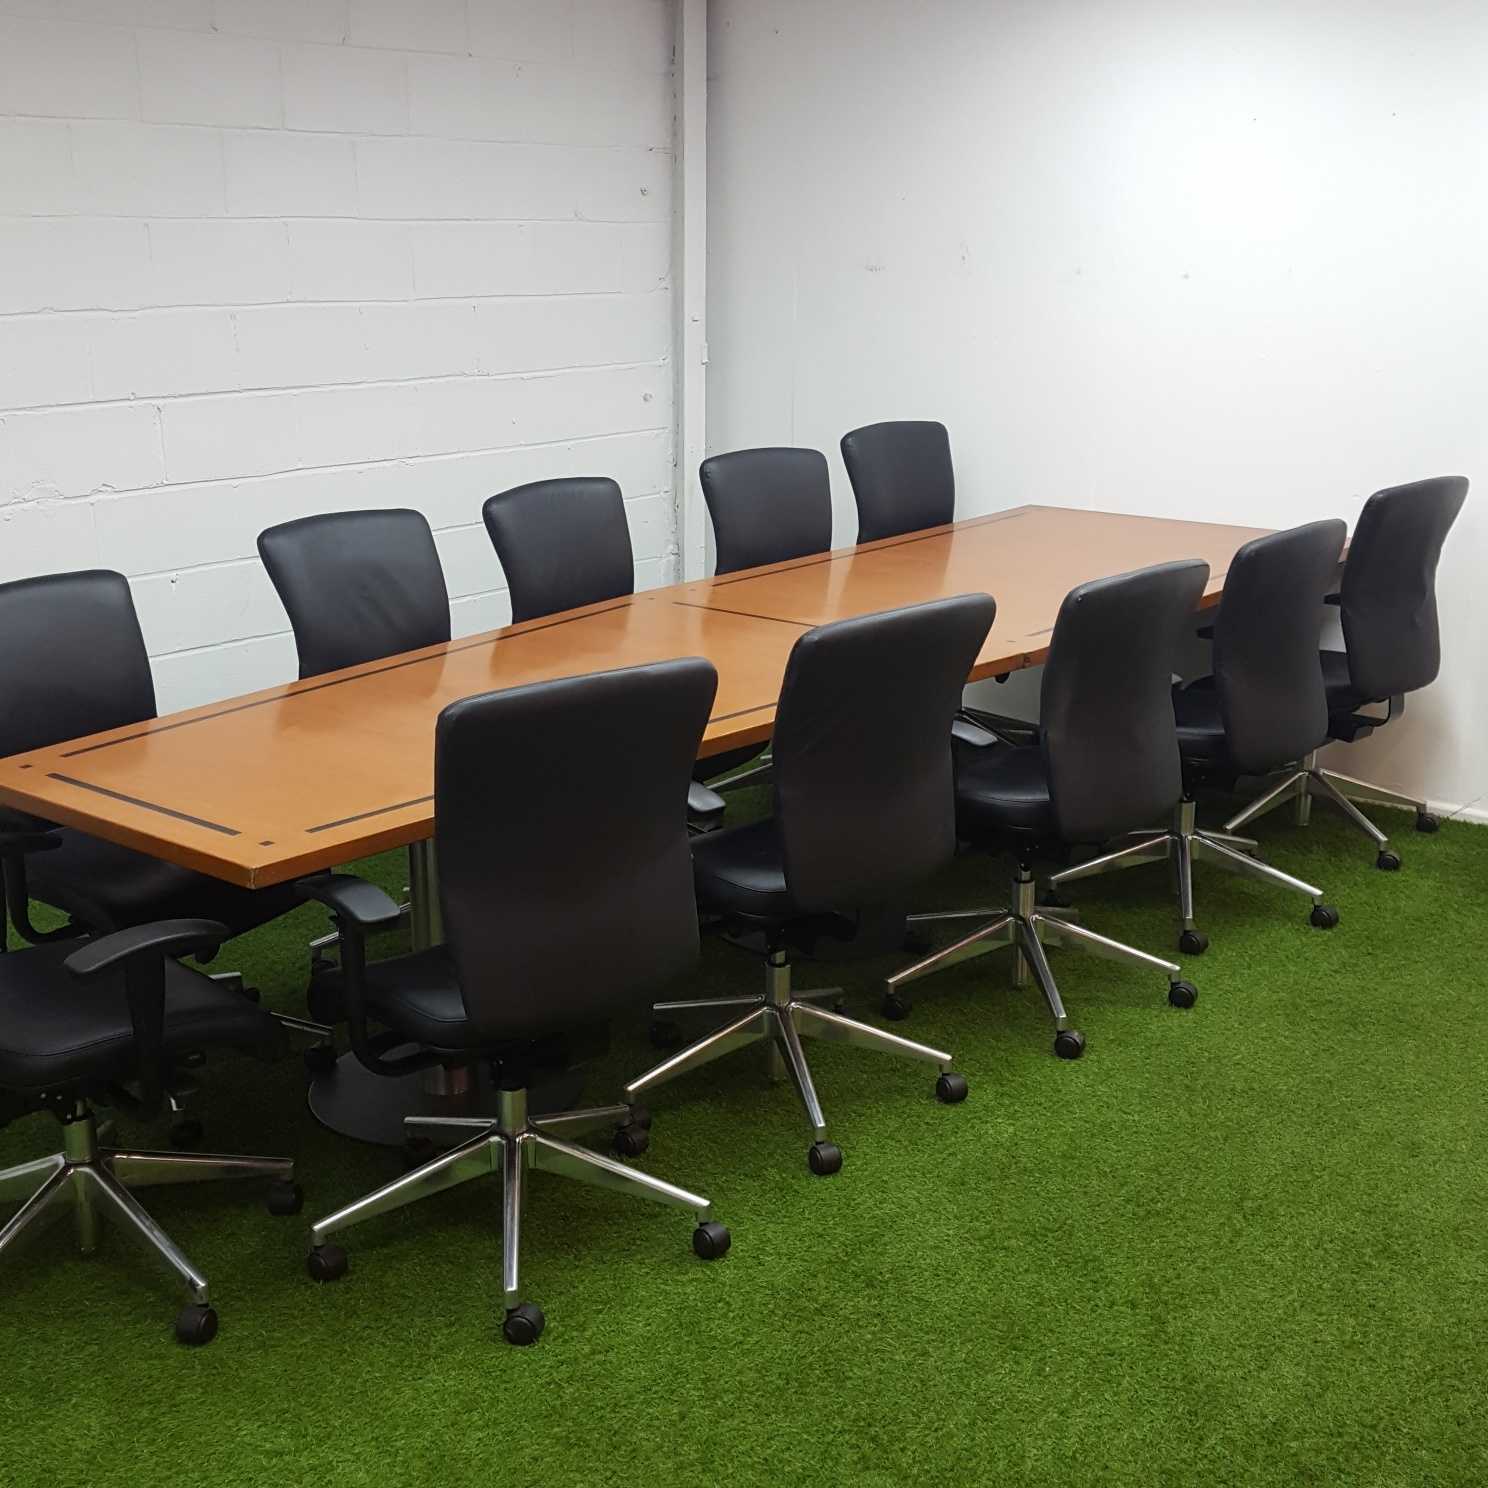 Boardroom Furniture For Sale: Angled Conference Table In Cherry